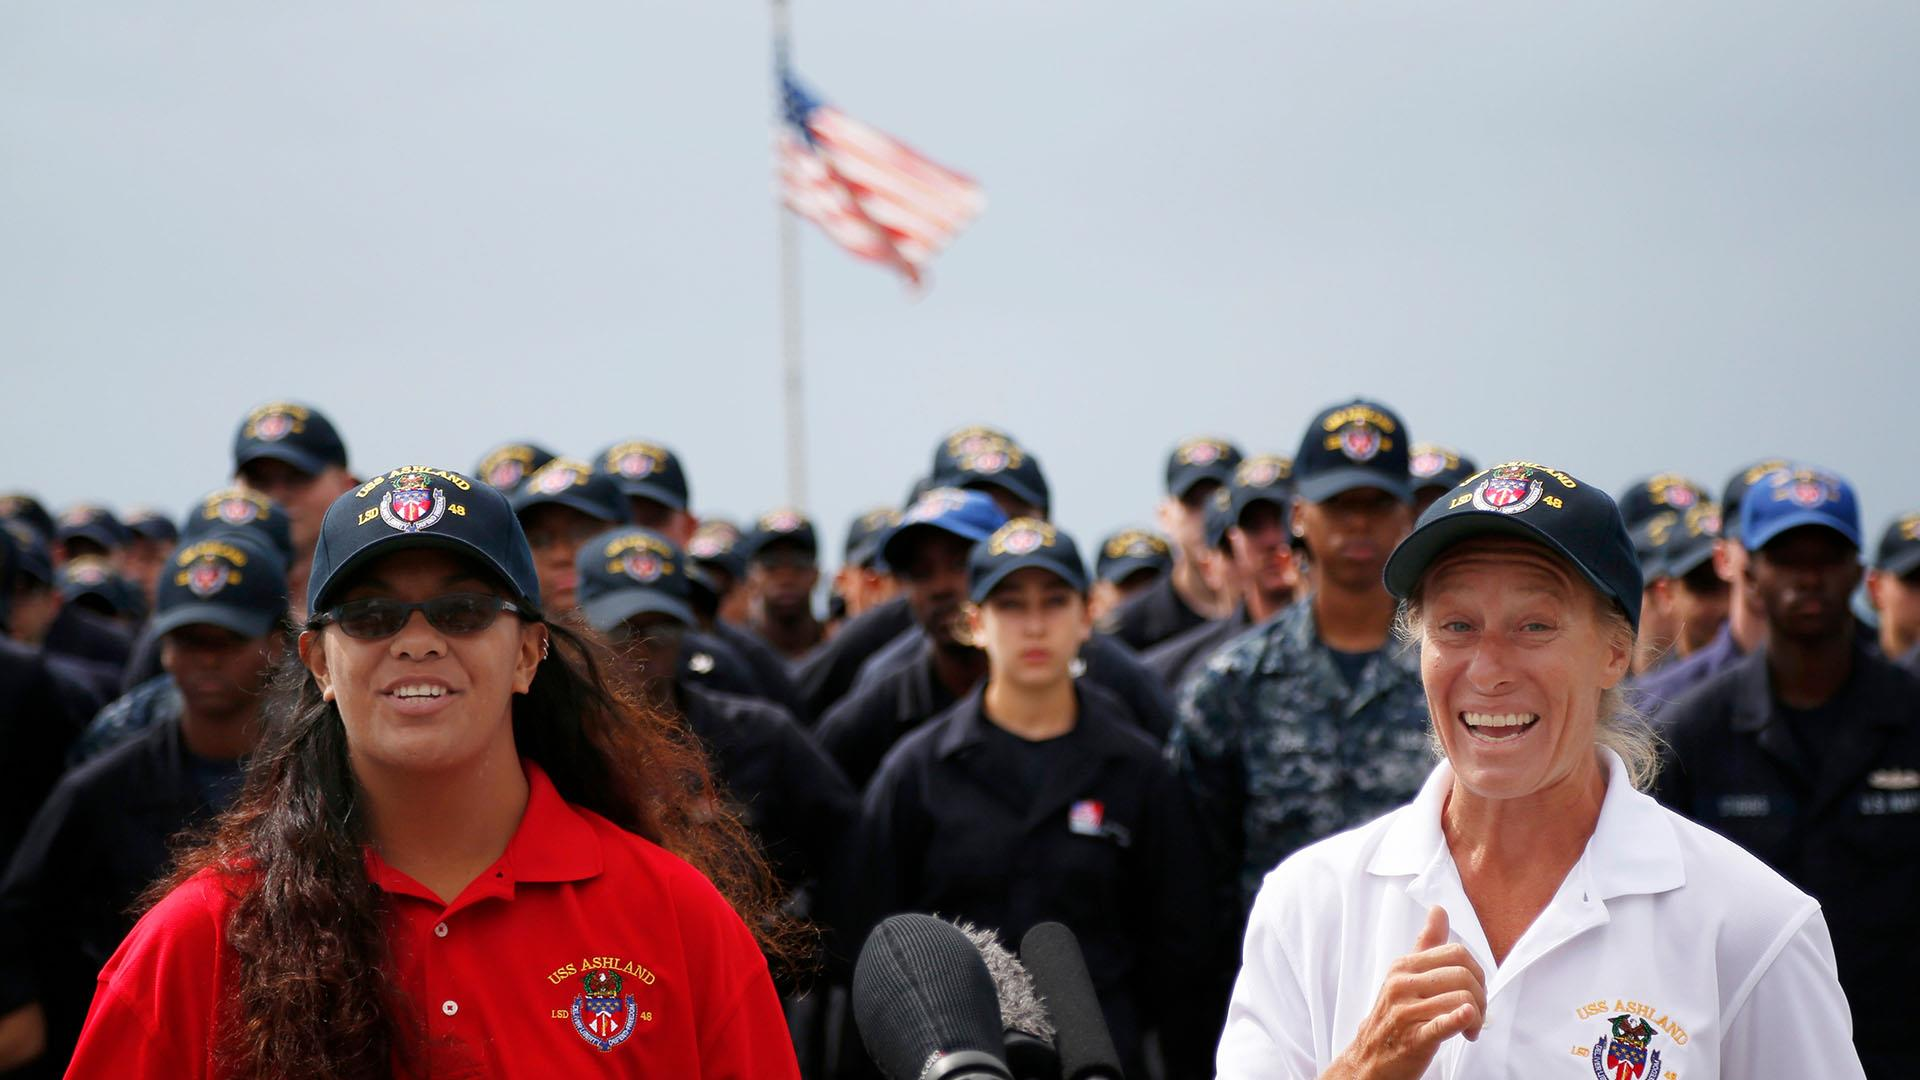 Sailors rescued in Pacific, Jennifer Appel and Tasha Fuiava pay tribute to U.S. Navy